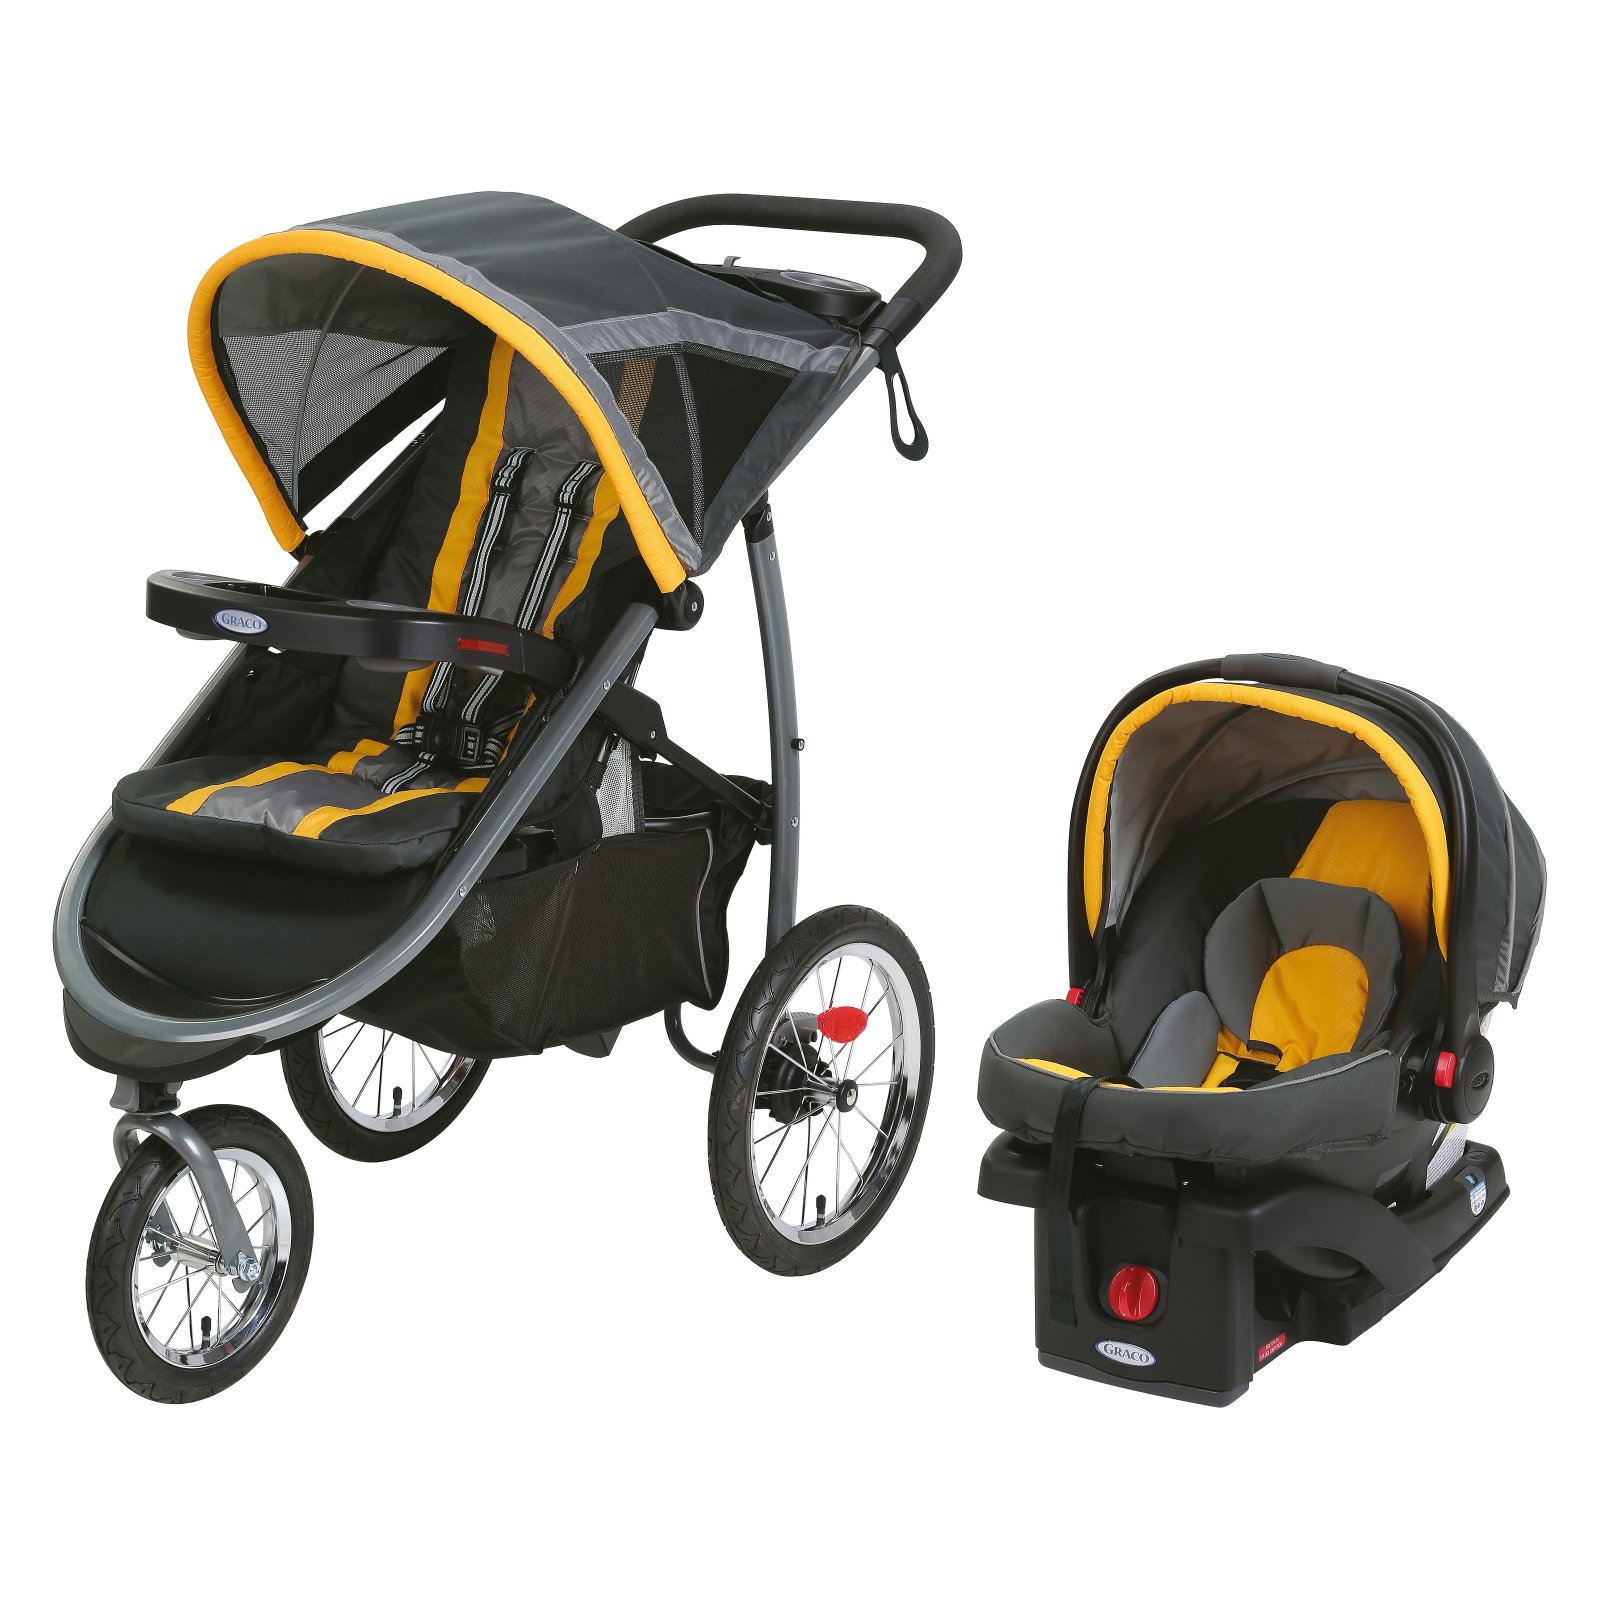 Graco Fastaction Jogger Travel System With Snugride Click